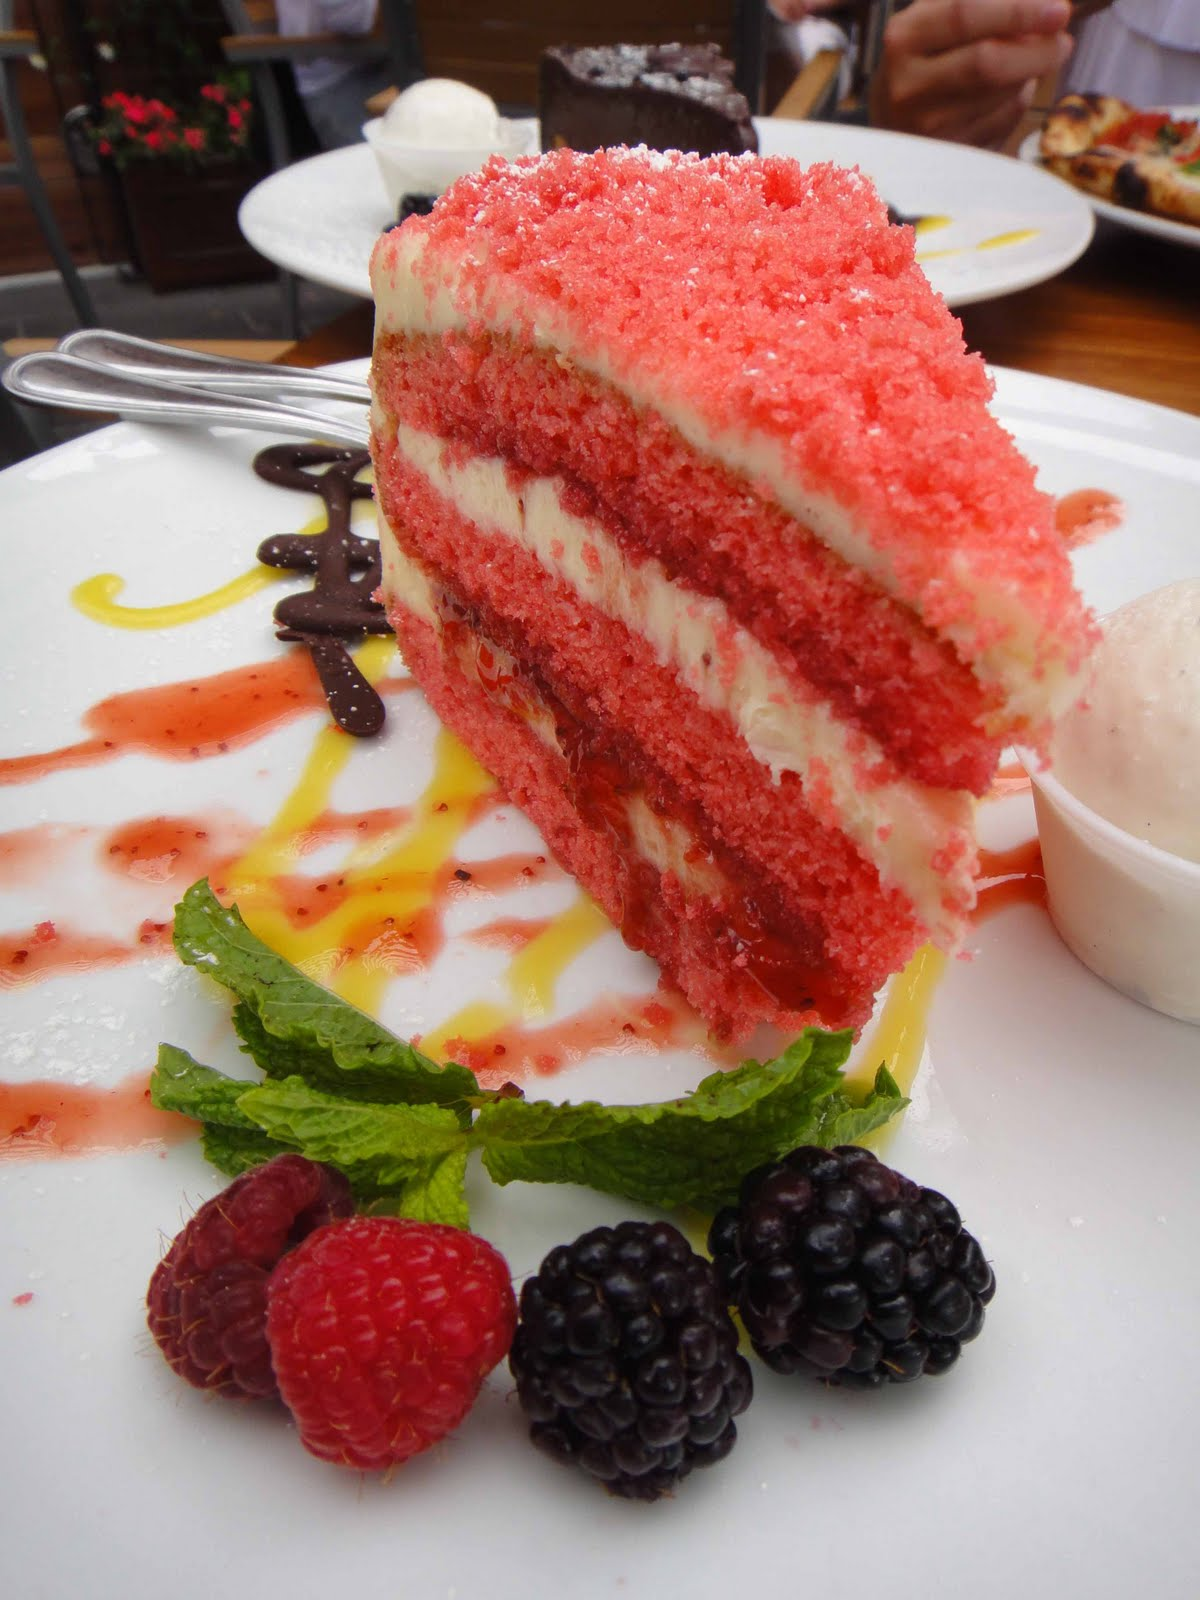 ... try our best cake and filling with more than 150 flavors of cake and